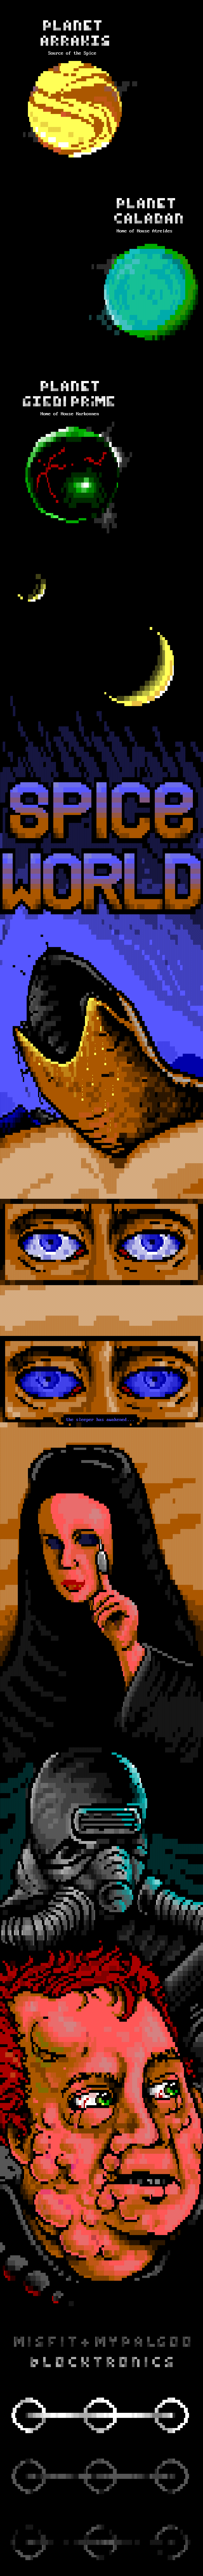 dune, spice, eye, eyes, monster, desert, sand, book, brown, joint, ansi joint, red, woman, hand, finger, misfit